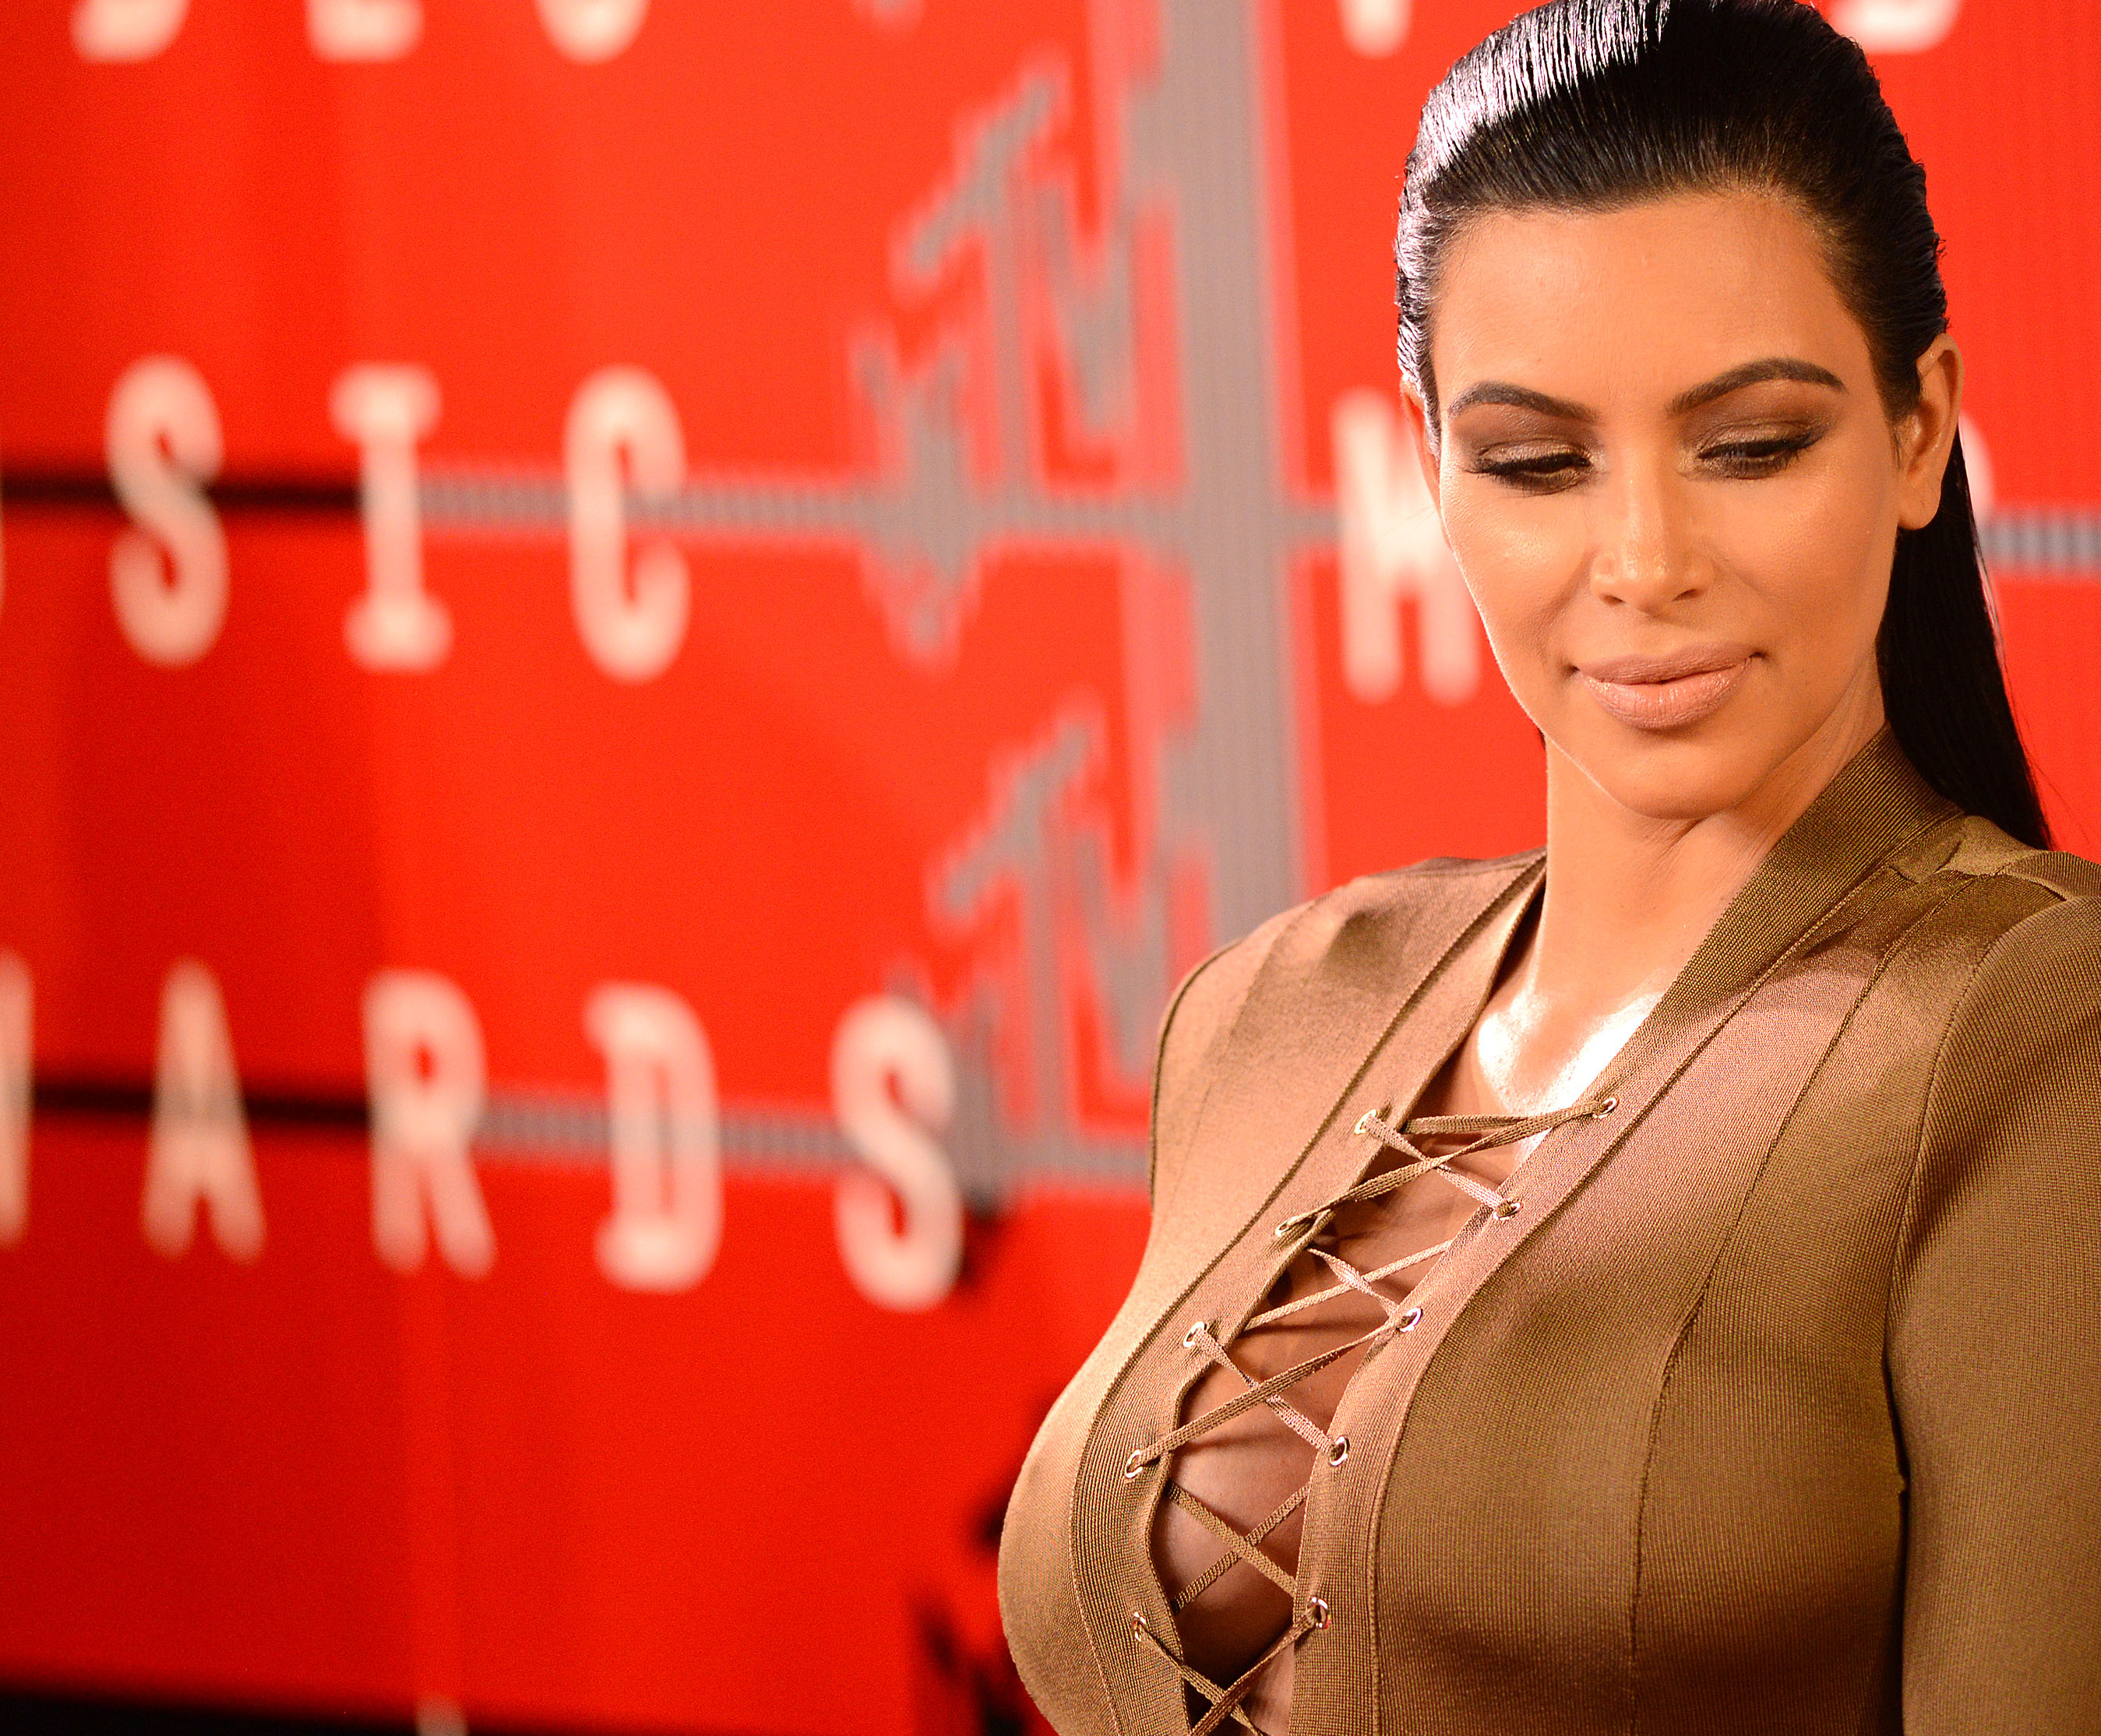 004c1c1a6ce Kim Kardashian shares her secret to gravity-defying cleavage – SheKnows